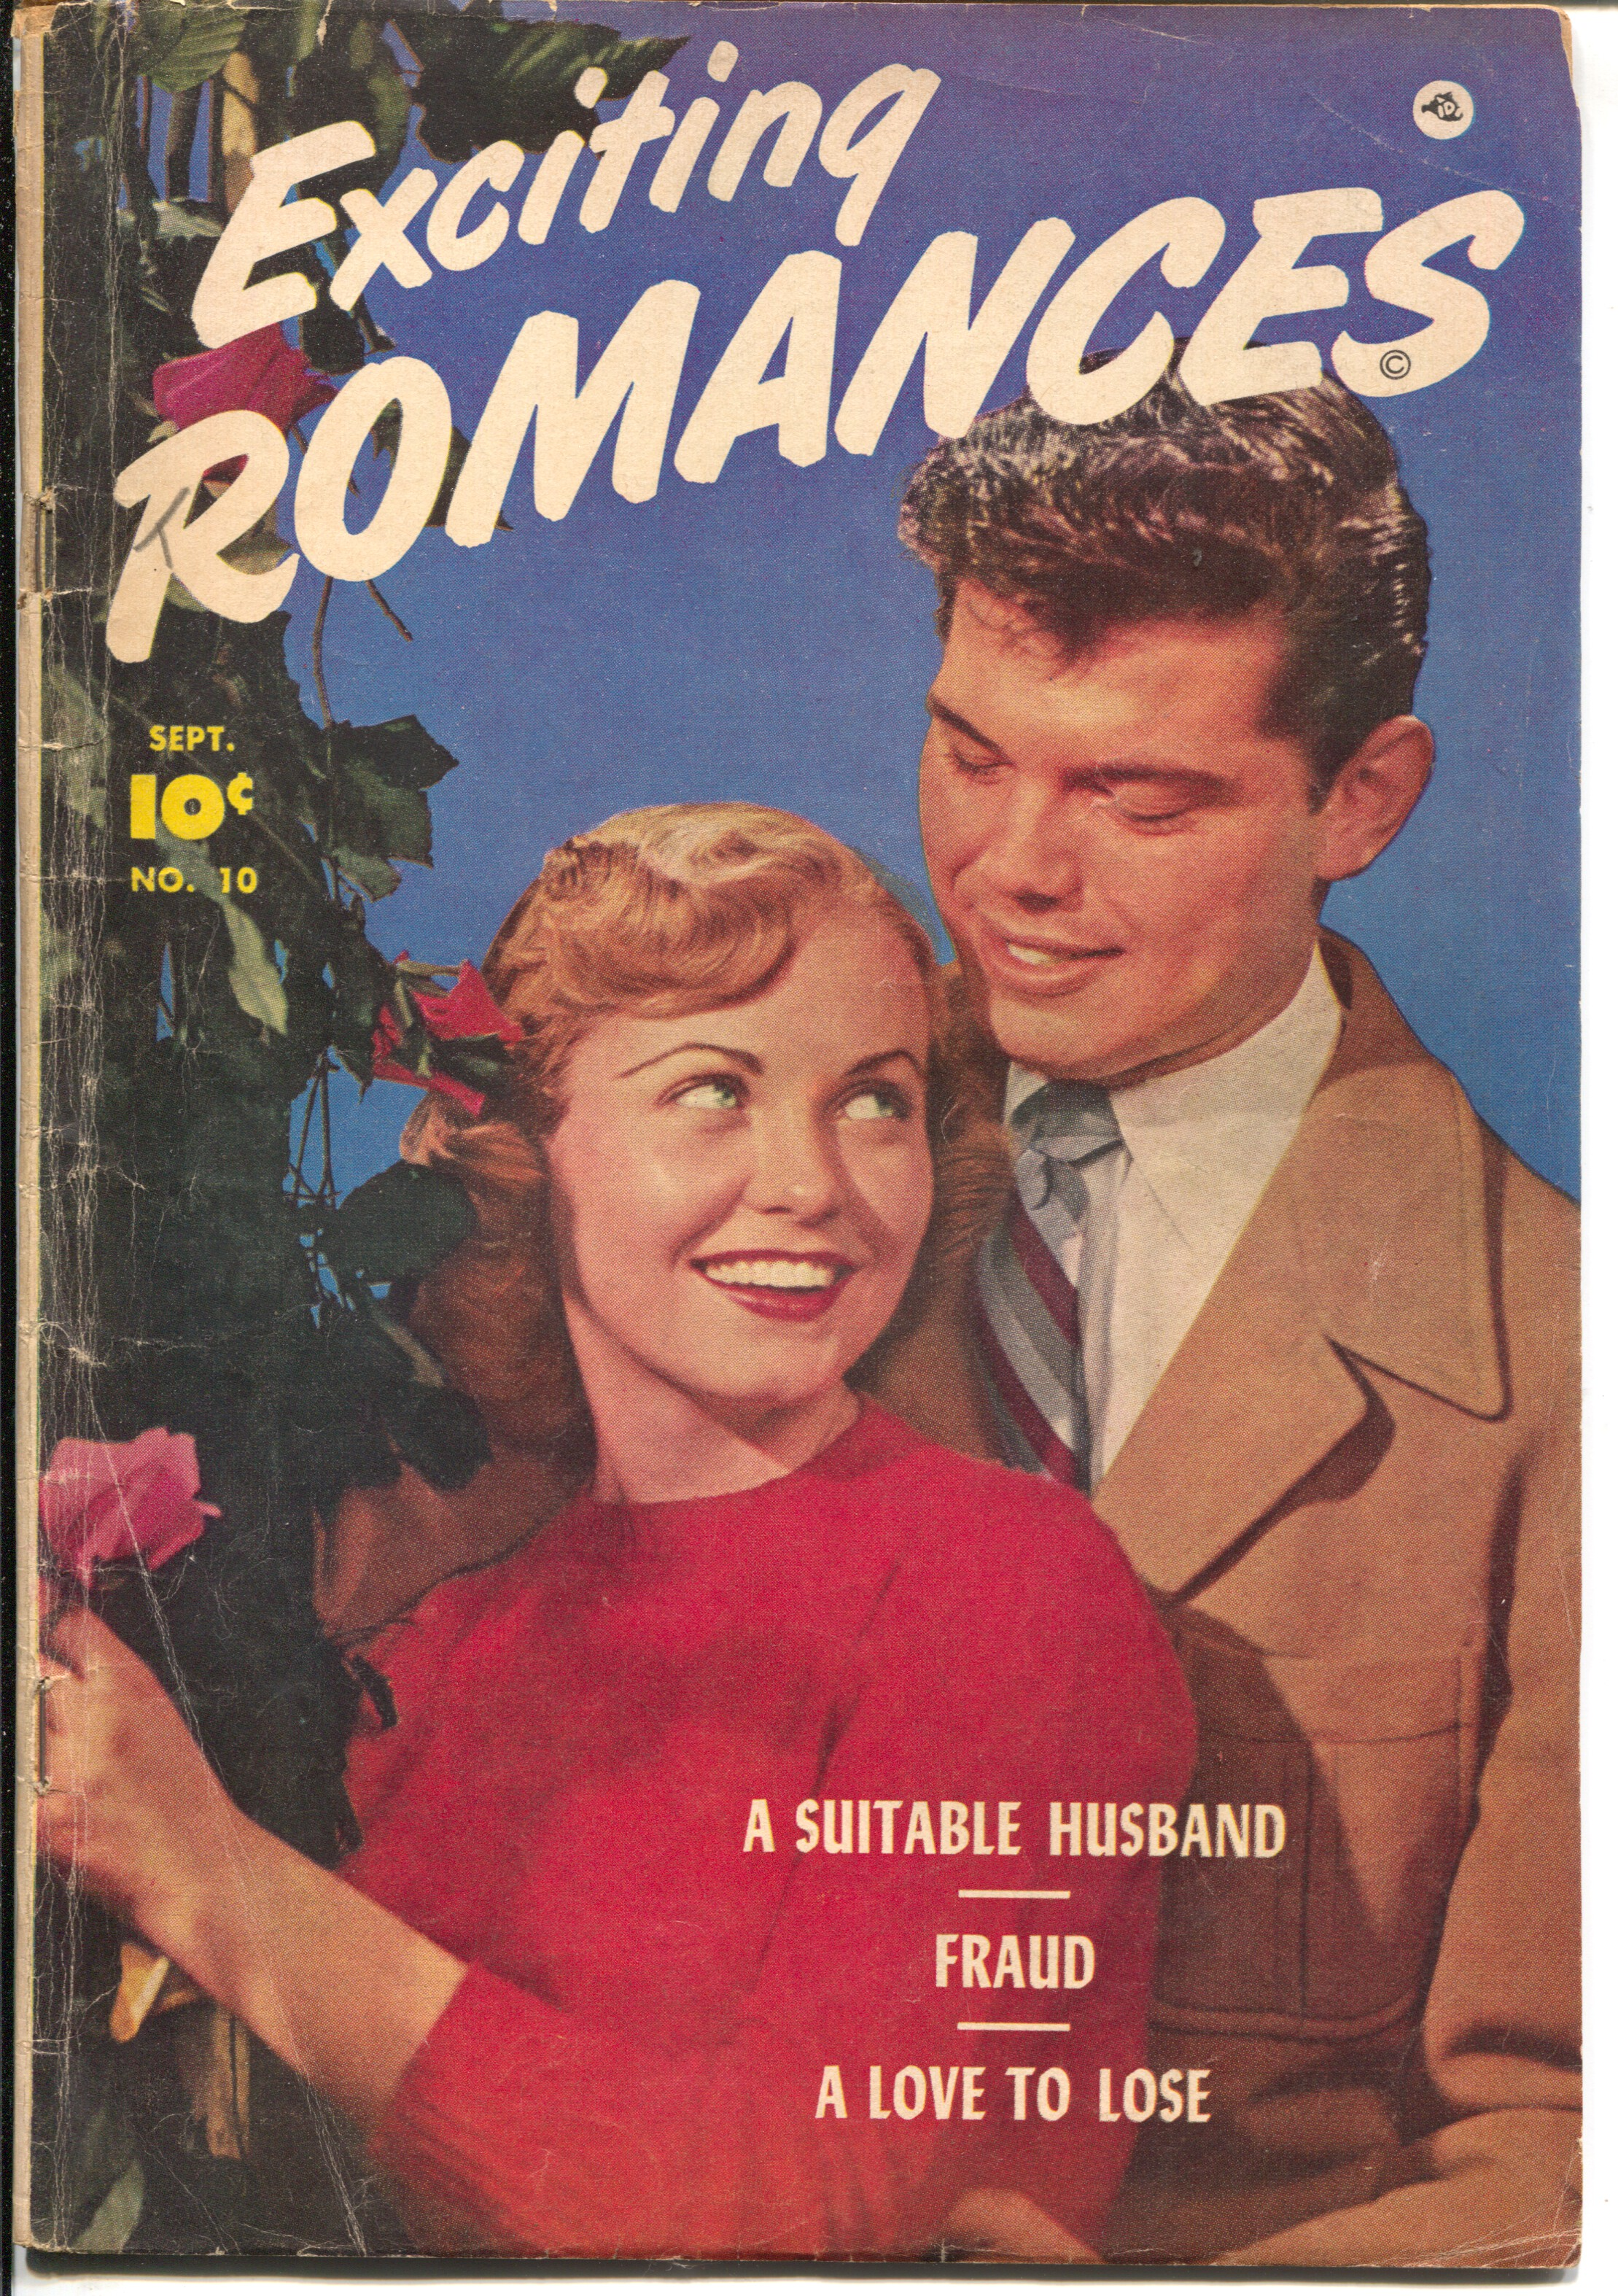 Exciting Romances #10 1952-Fawcett-Bob Powell-jaguar & lingerie imagery-VG Very Good -Bob Powell art -Photo cover Jaguar and lingerie inagery Condition: VG